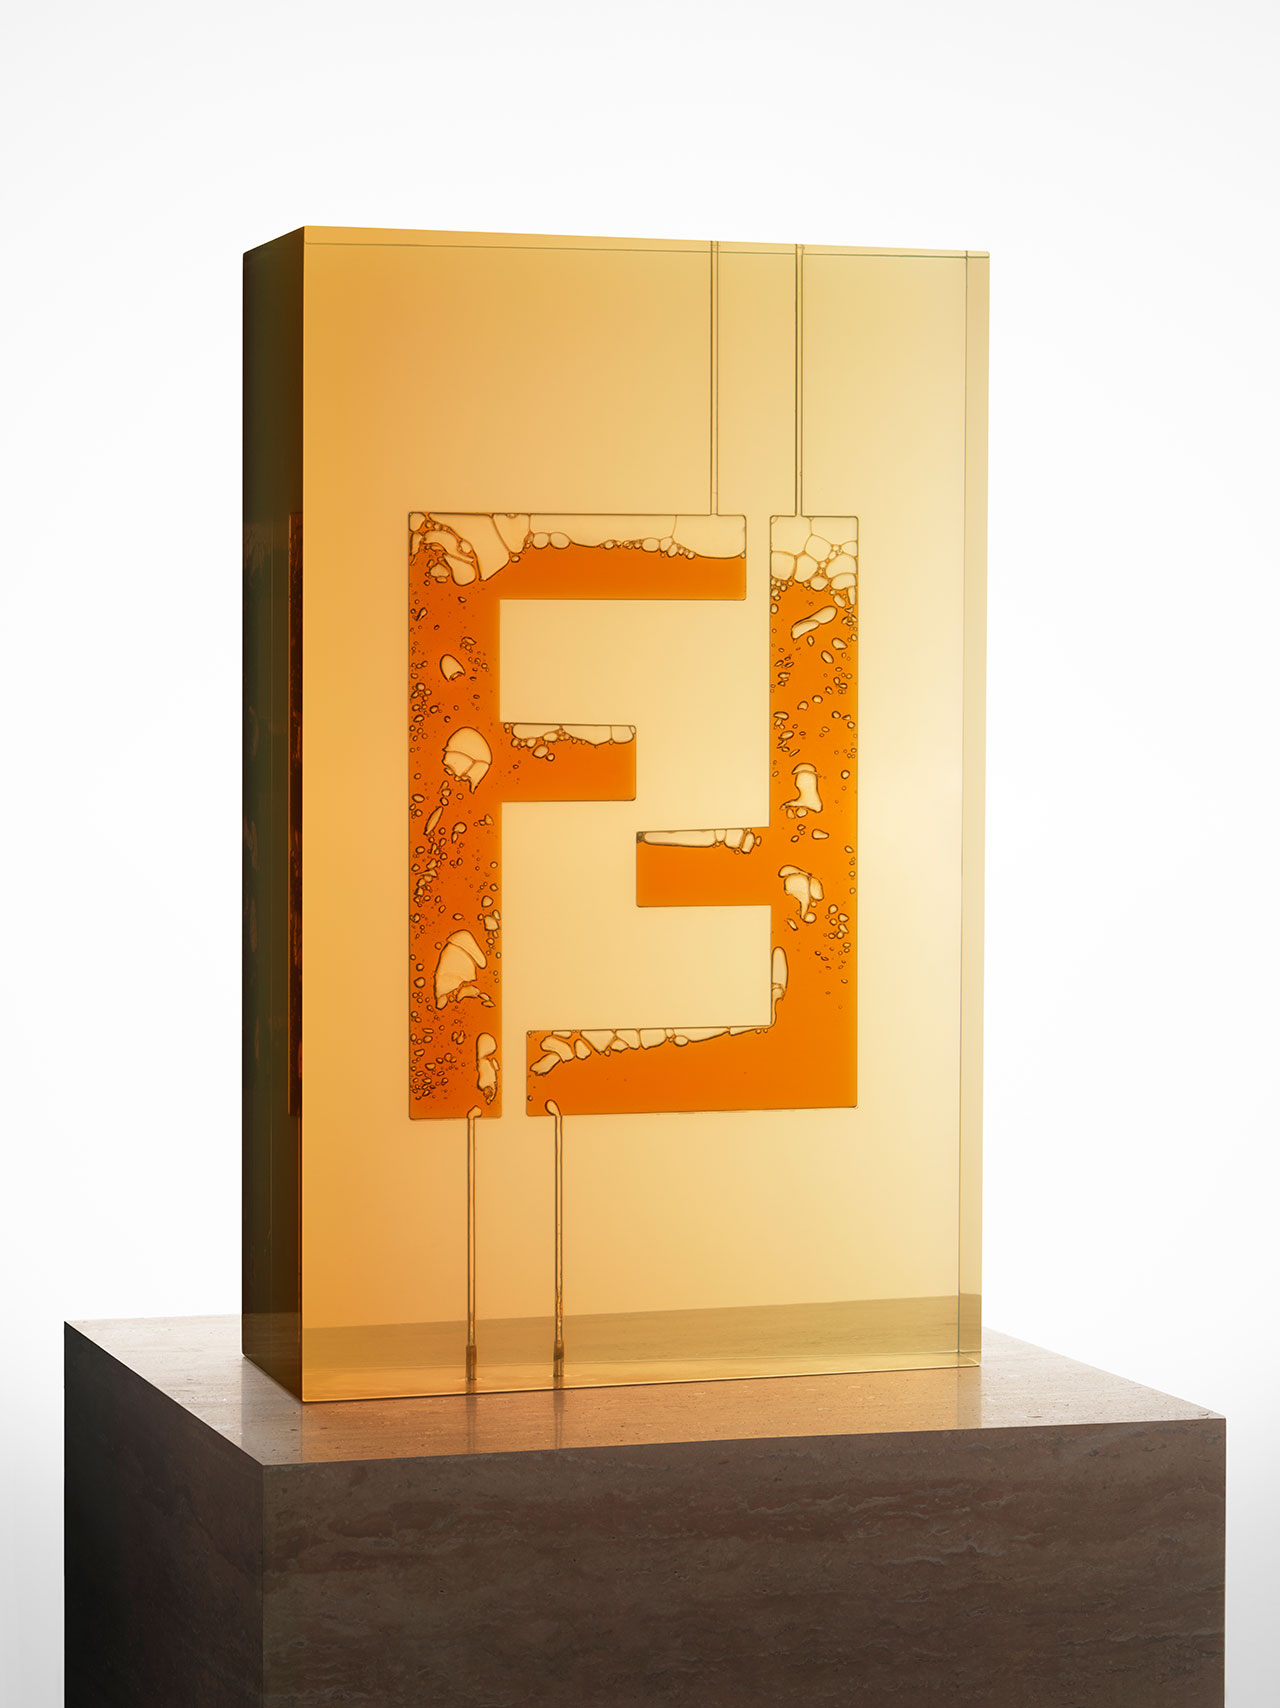 FENDI FF Logo N.2. Photo by Carl Kleiner, courtesy of FENDI.